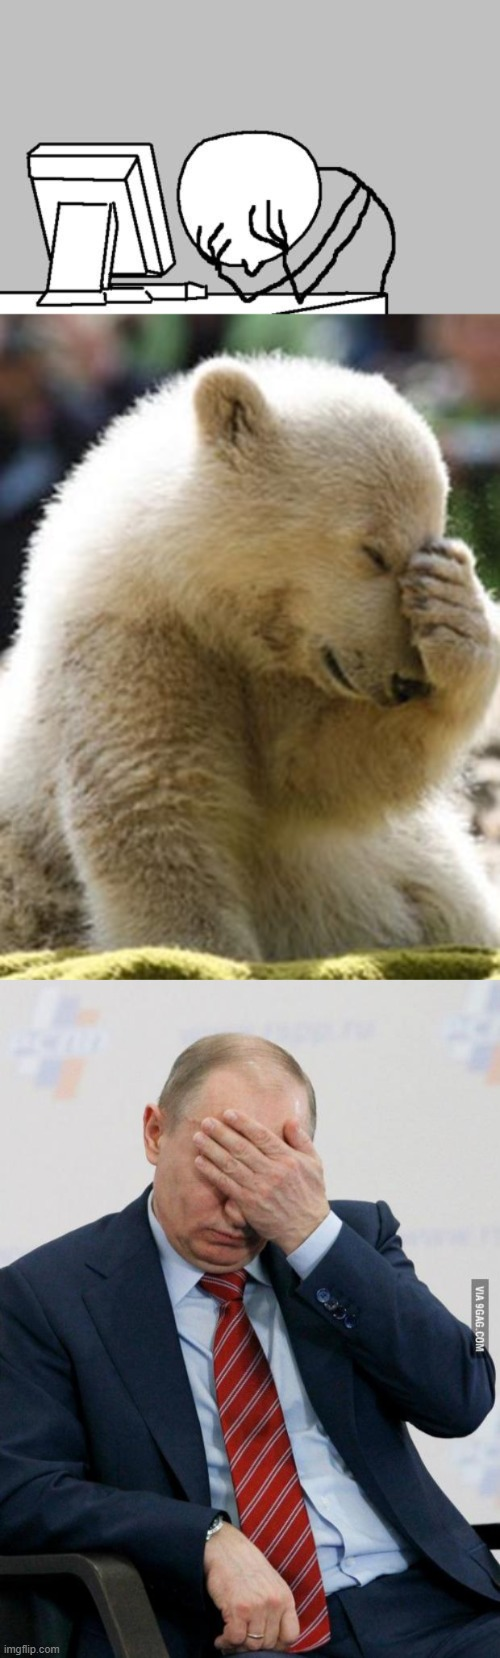 image tagged in memes,computer guy facepalm,facepalm bear,putin facepalm | made w/ Imgflip meme maker